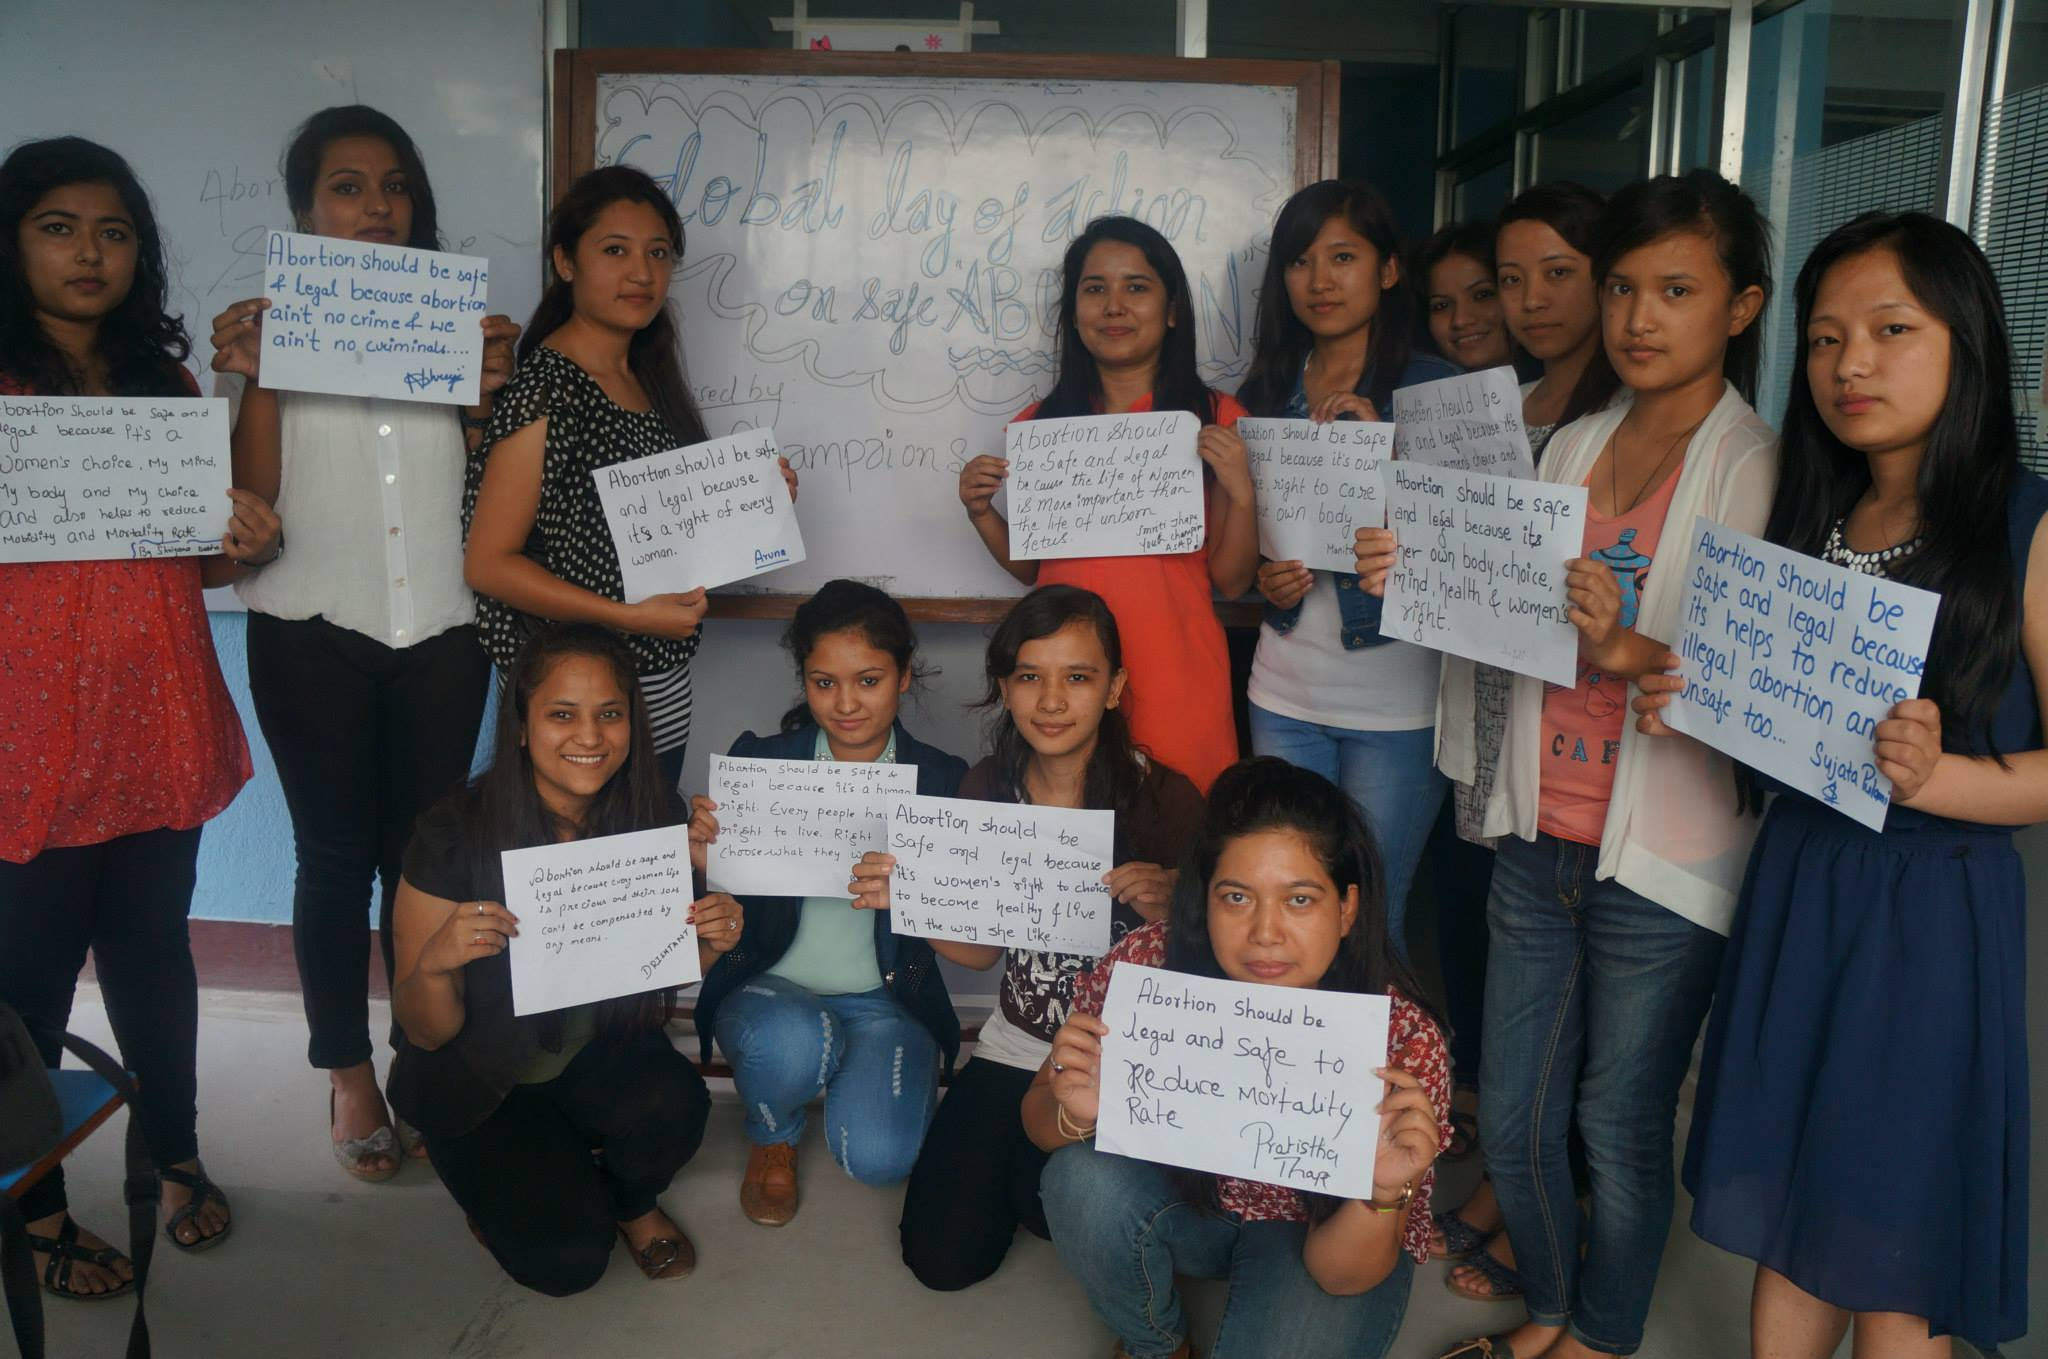 It's Her Right: Nursing Students From Nepal